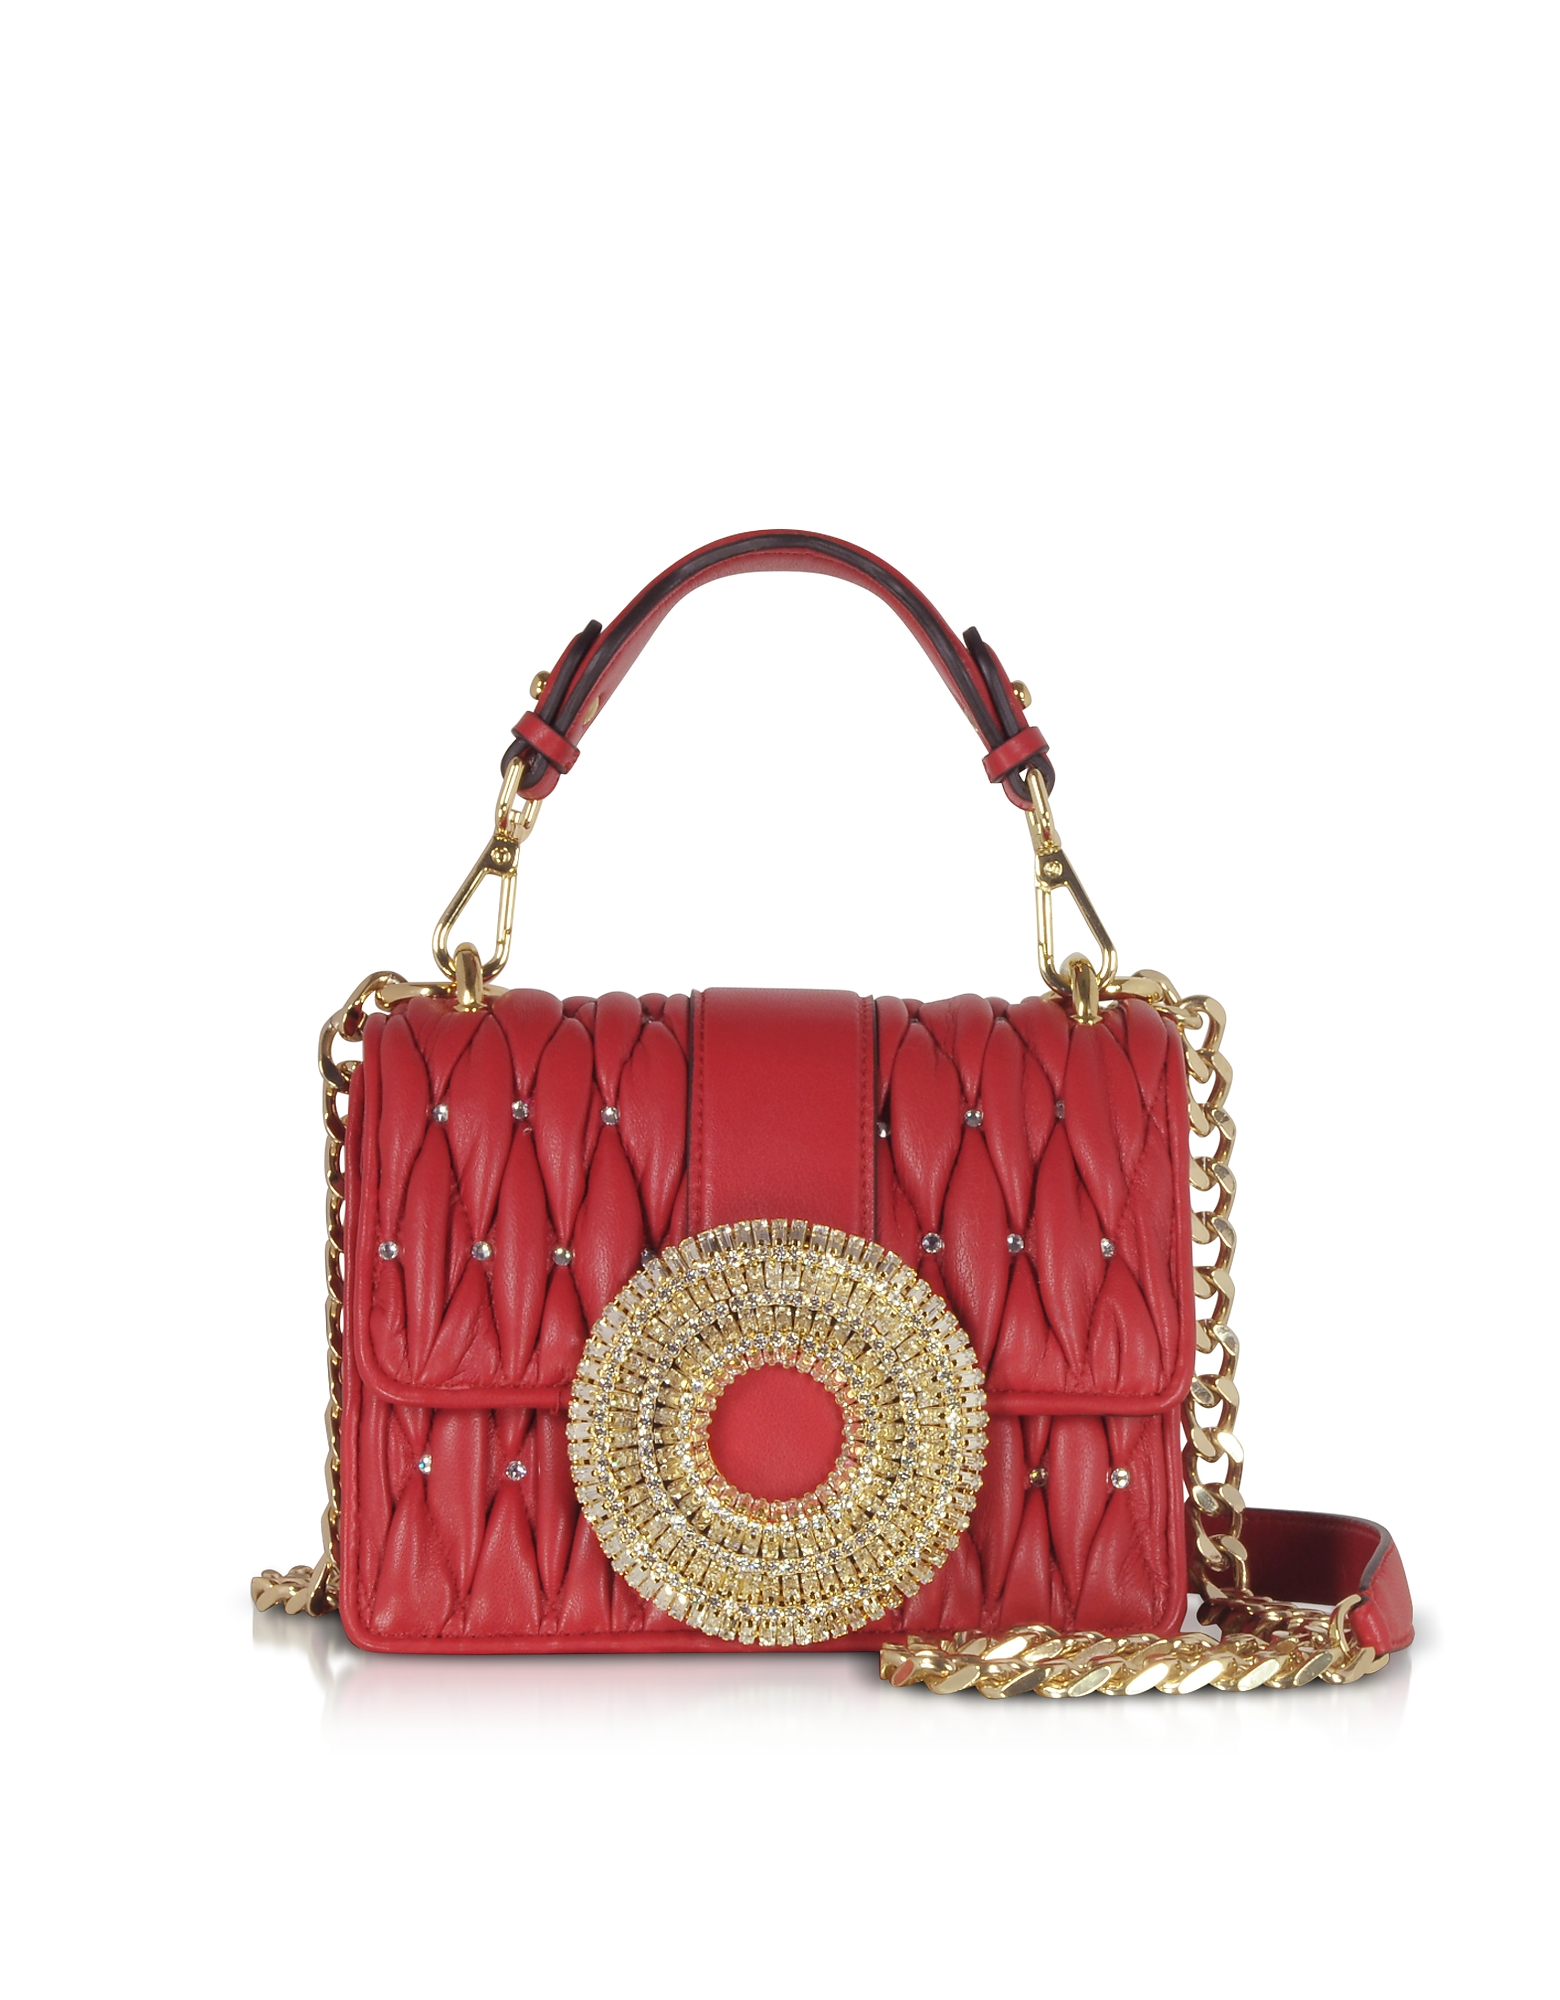 Gedebe Designer Handbags, Gio Small Nappa Leather & Crystal Handbag